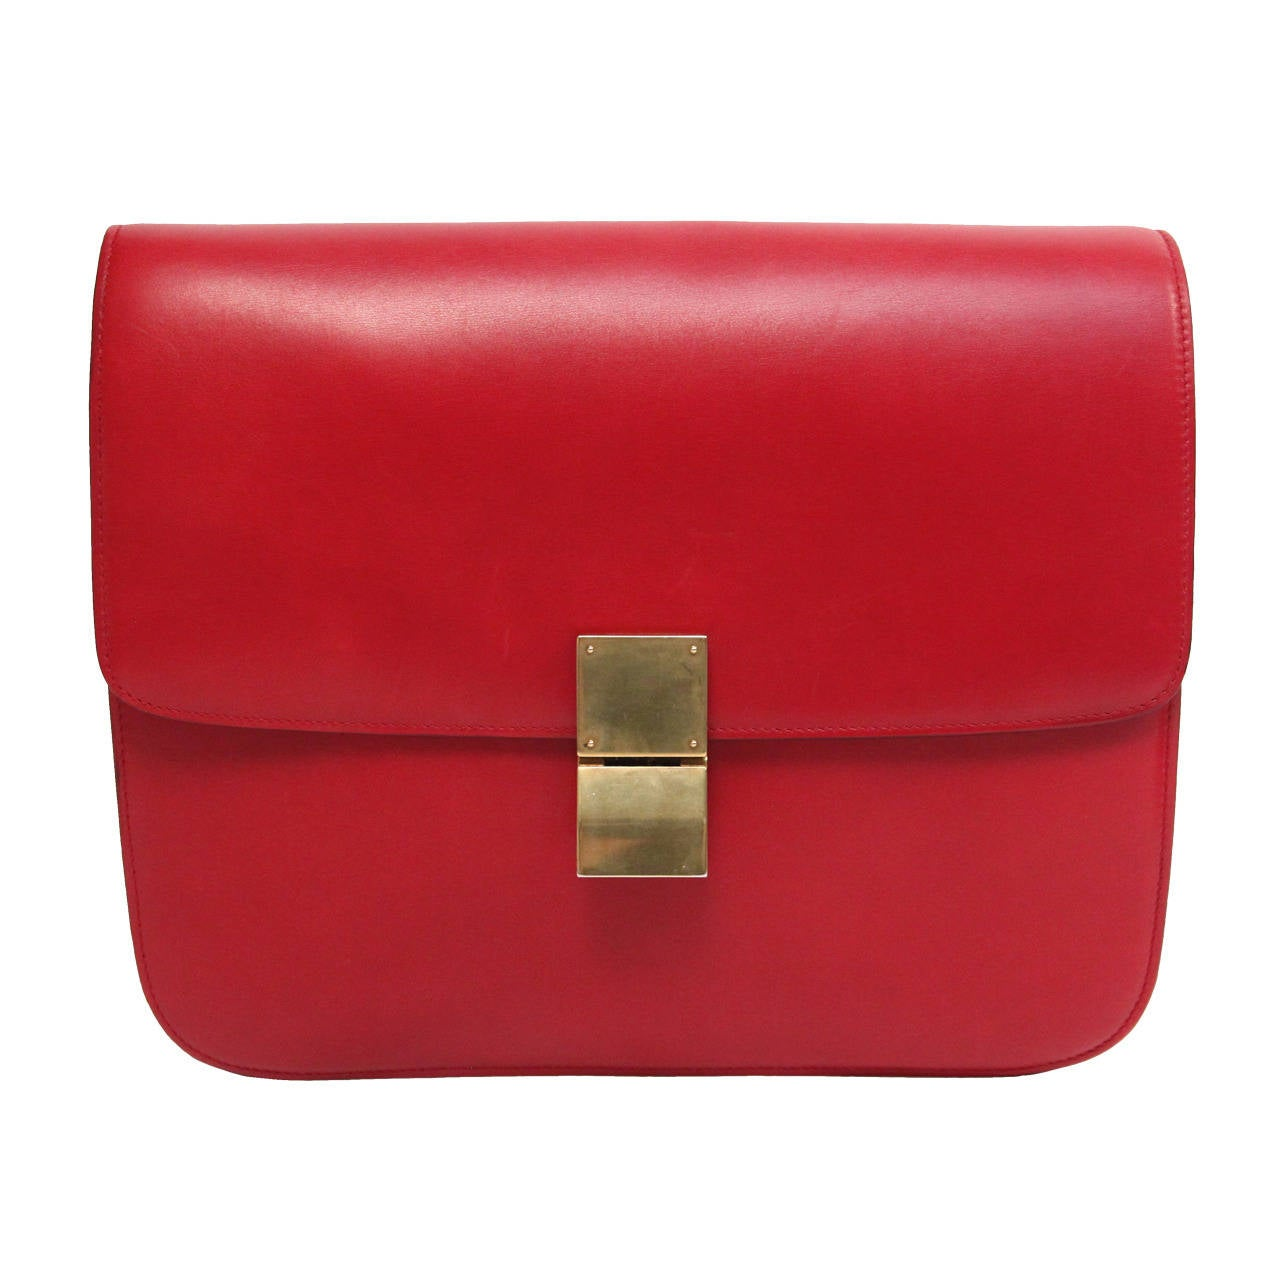 CELINE large classic box leather bag with convertible strap in red For Sale